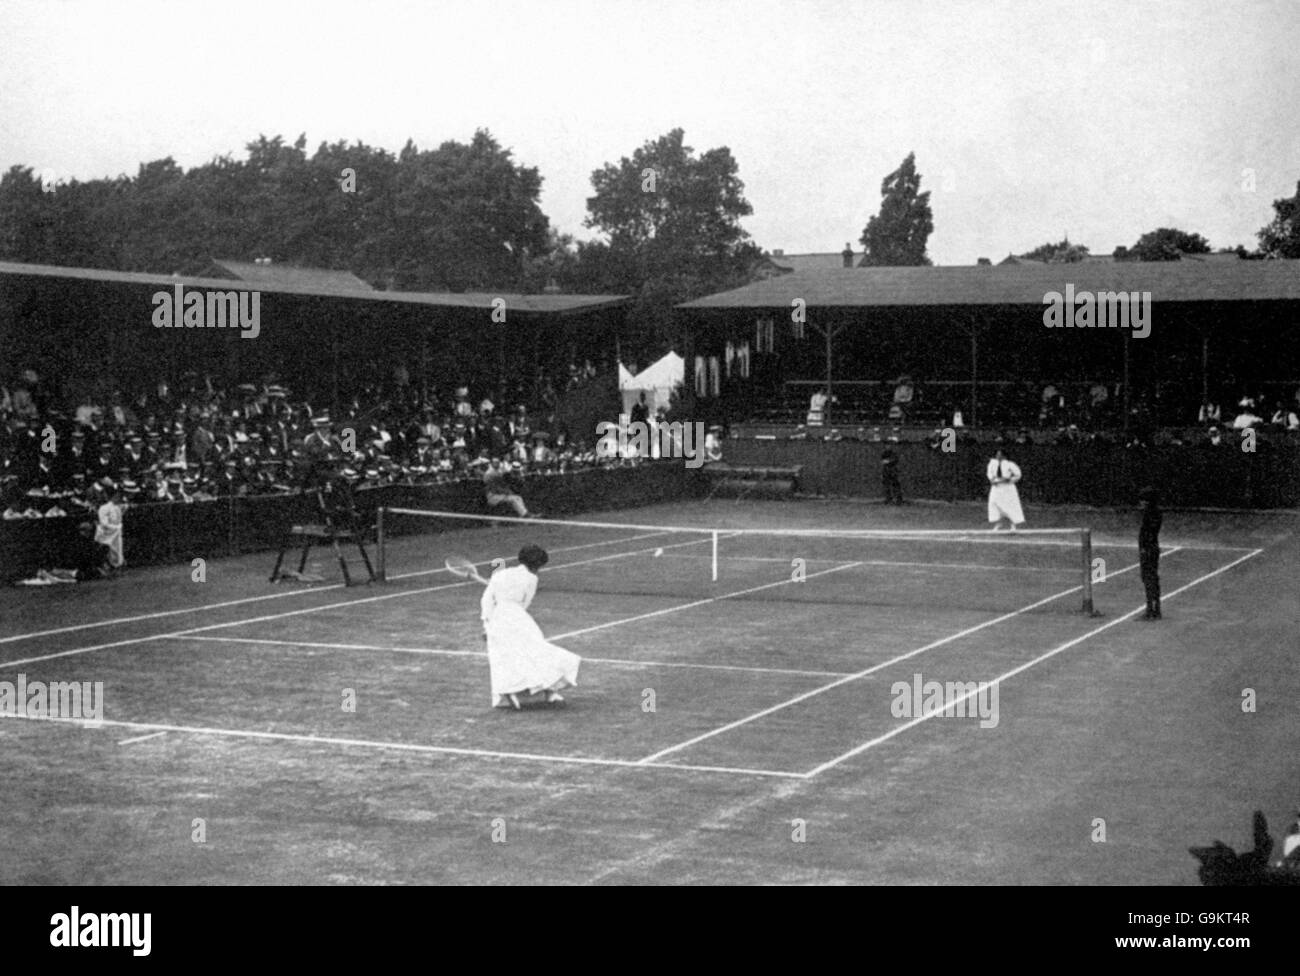 Tennis - London Olympic Games 1908 - Ladies' Singles - Final - The All England Club - Stock Image